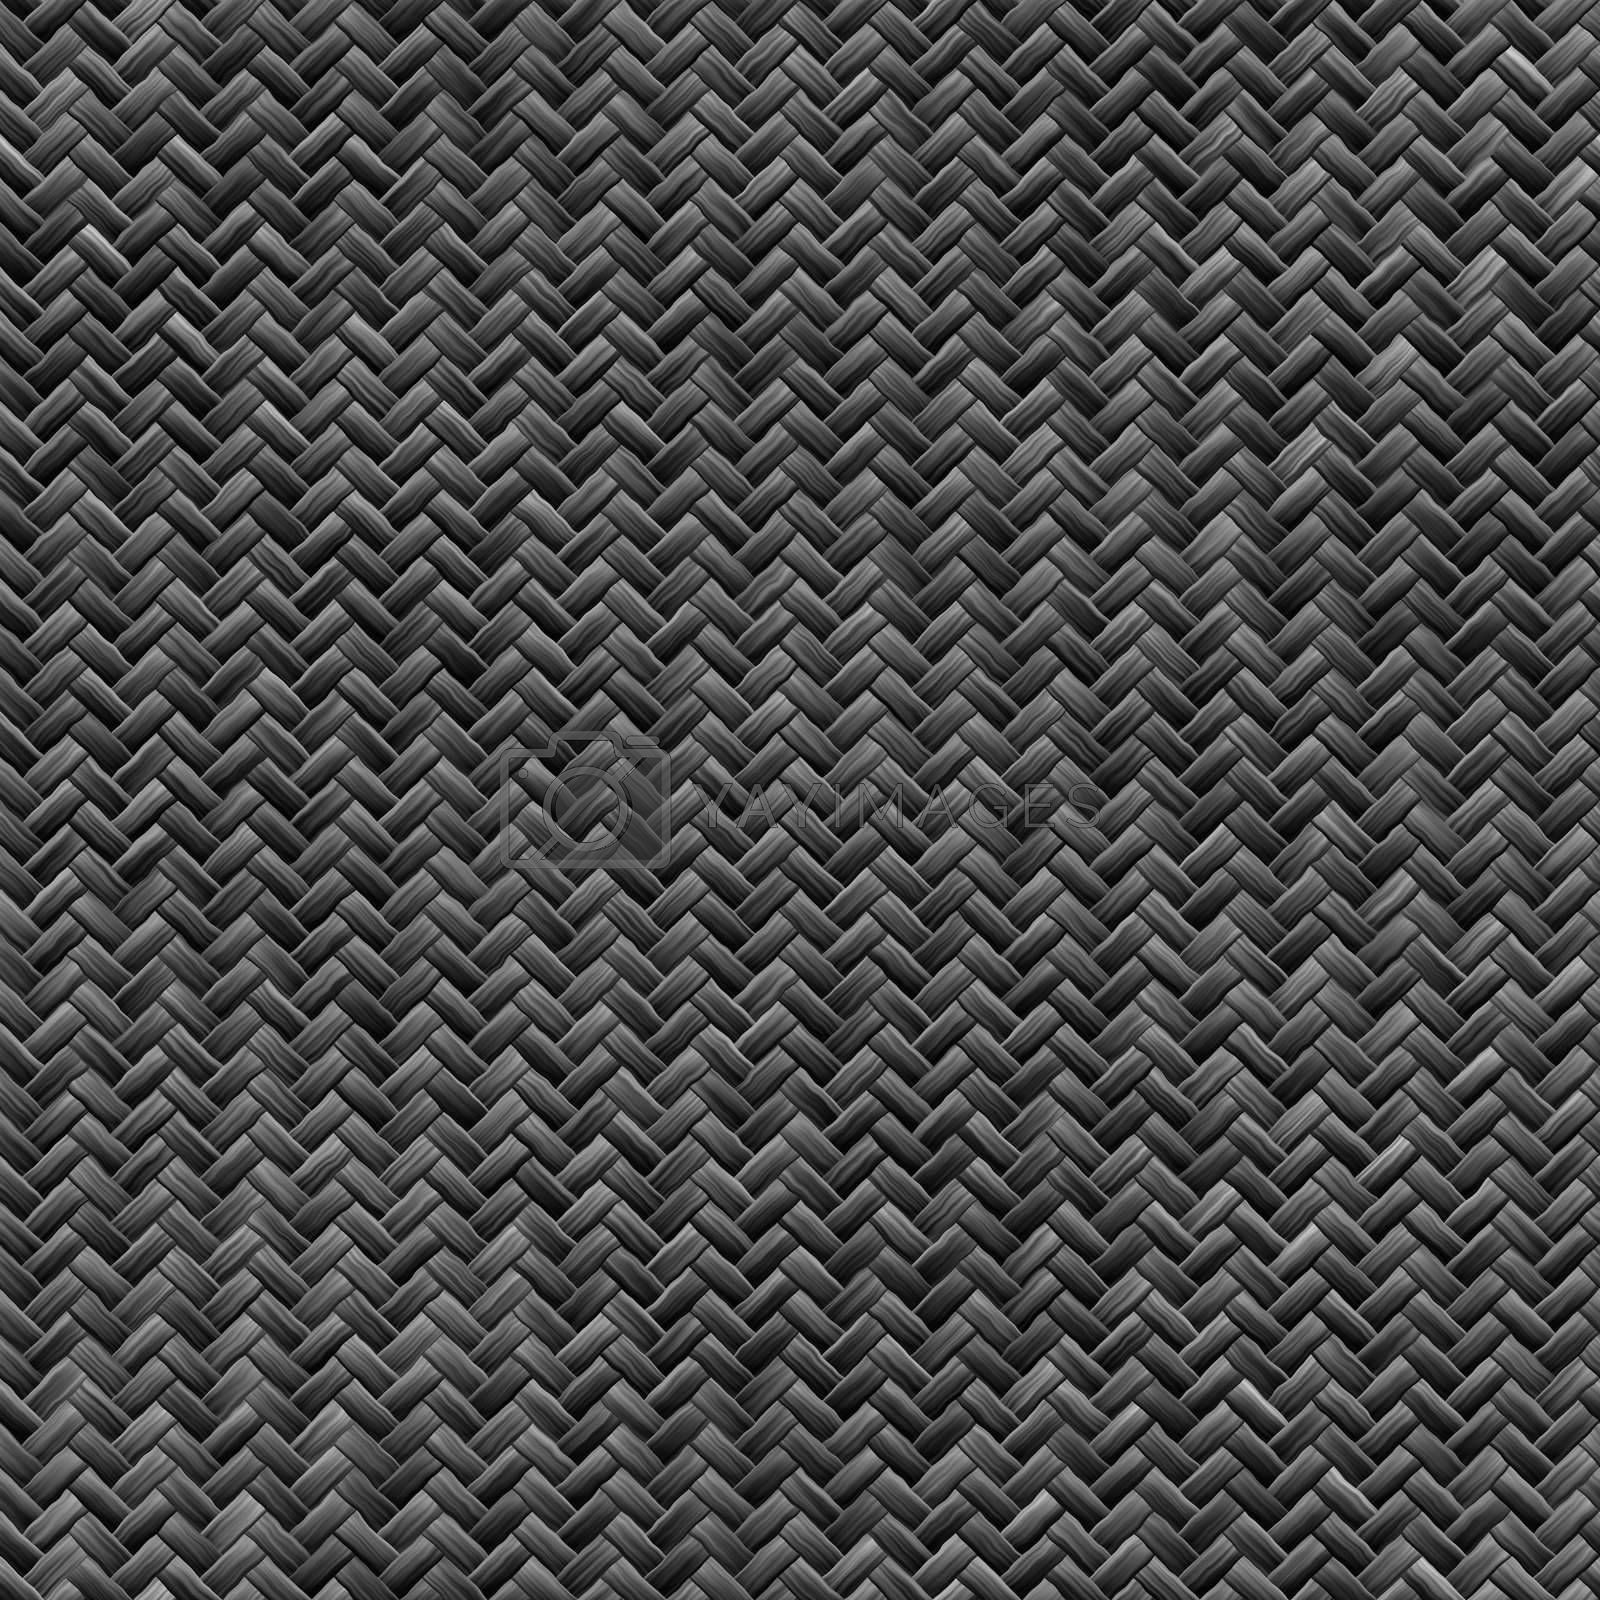 """A tightly woven carbon fiber background texture - a great and highly-usable art element for that """"high-tech"""" look you are going for in your print or web design piece."""